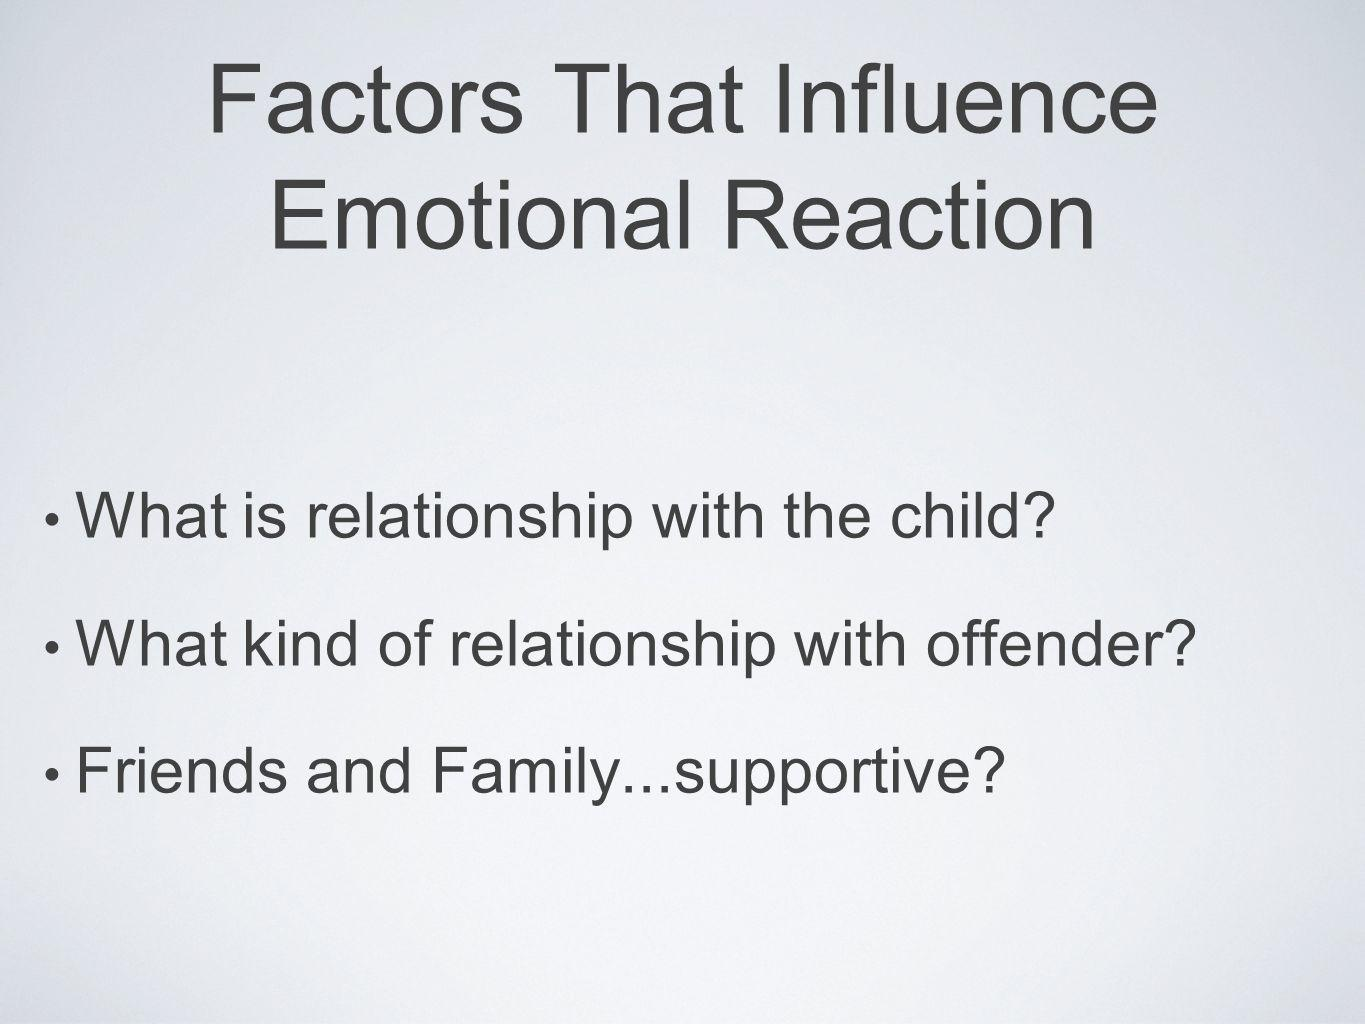 Factors That Influence Emotional Reaction